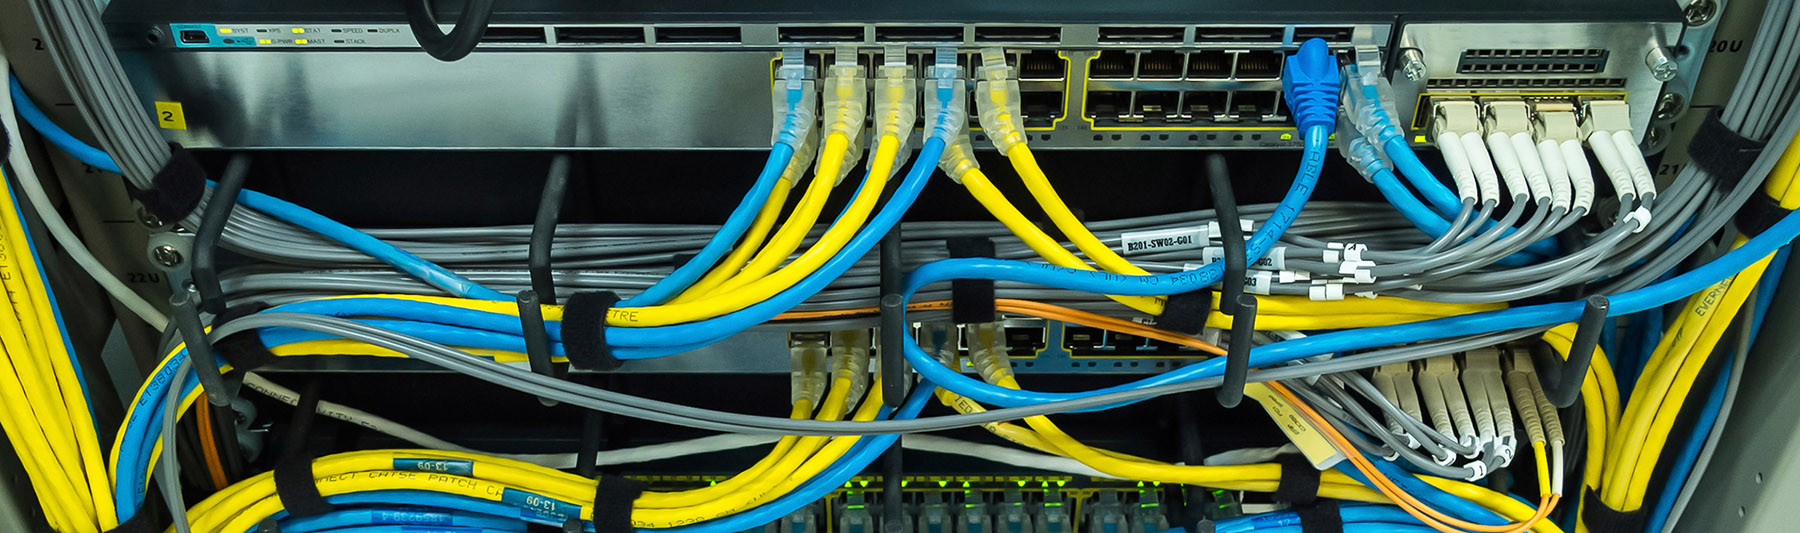 hight resolution of office moves cabling services